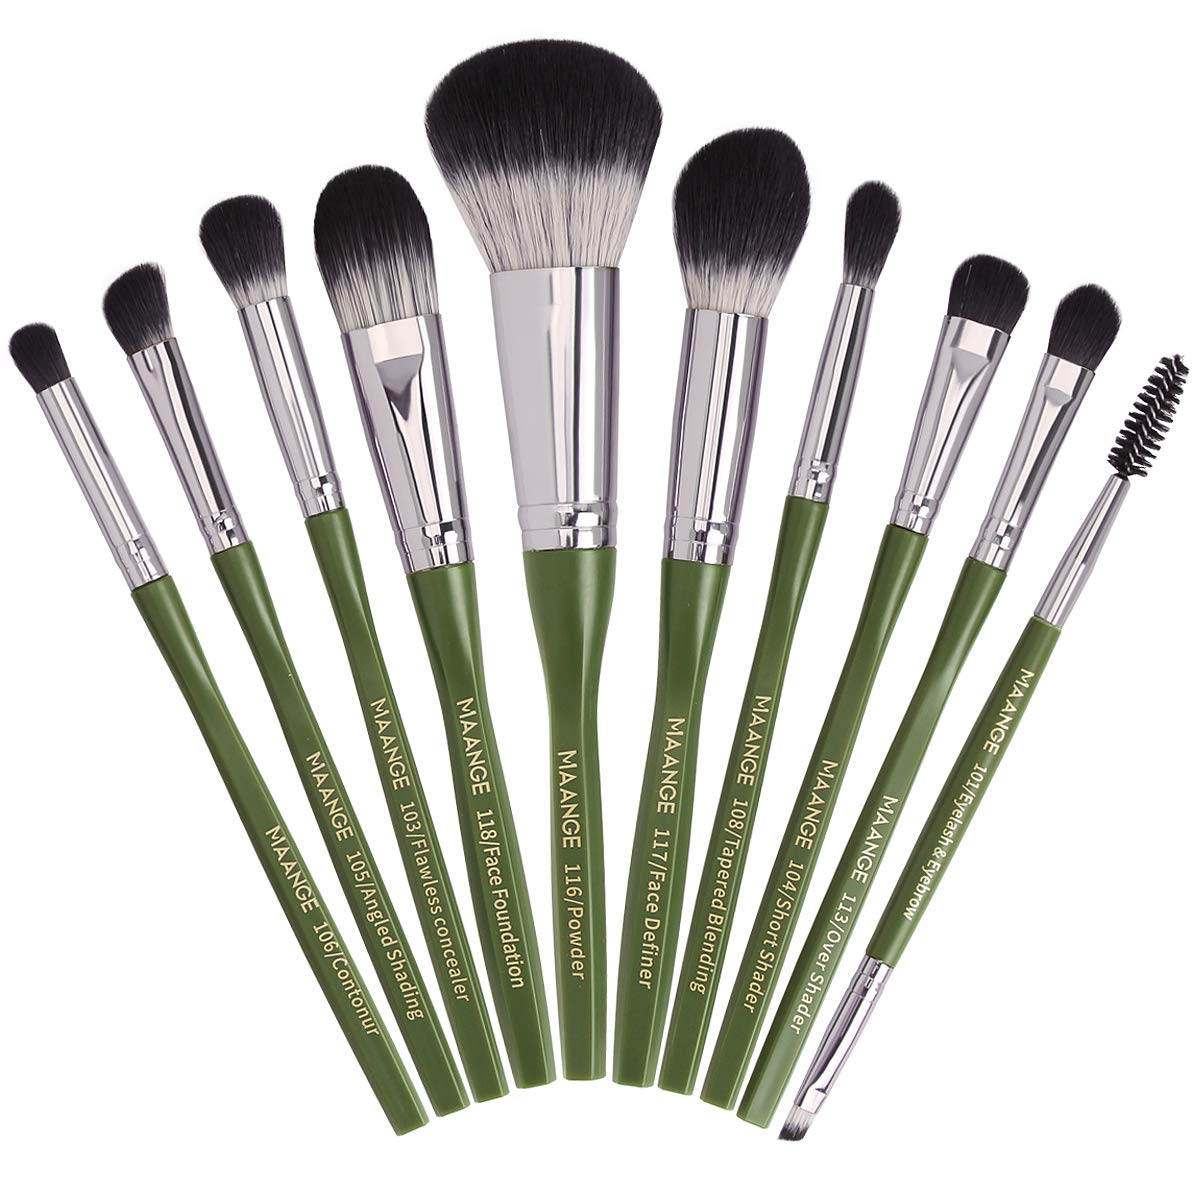 Makeup Brushes, MAANGE 10Pcs Makeup Brush Set Premium Synthetic Foundation Contour Highlight Professional Makeup Brush Set for Women Girl (Green)